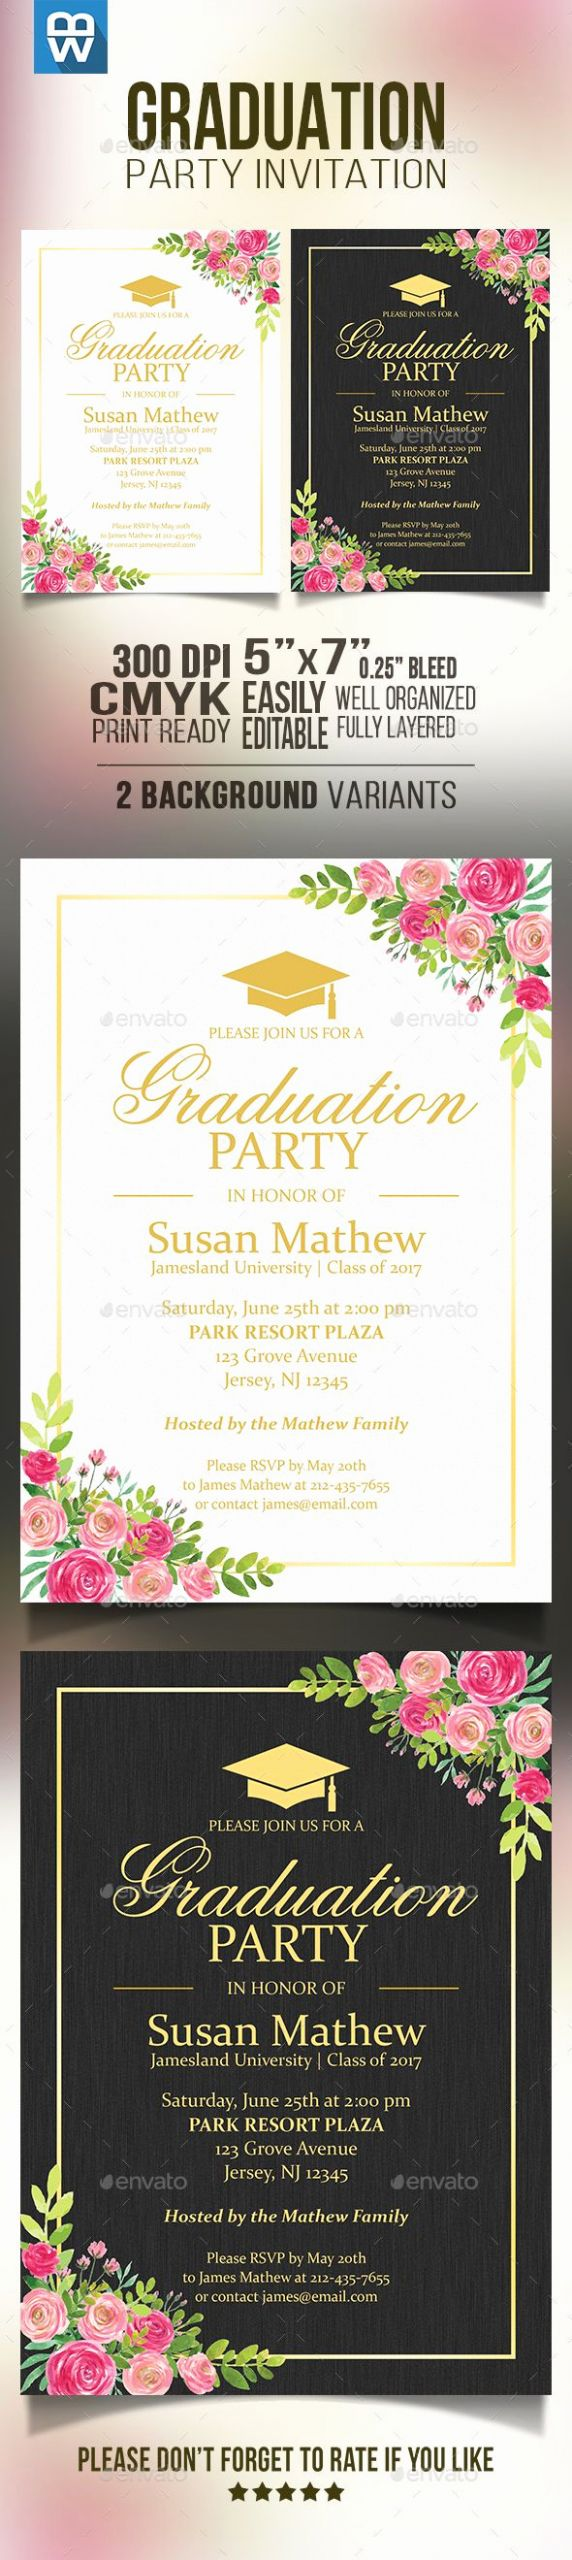 Template for Graduation Invitation Awesome Best 25 Graduation Invitation Templates Ideas On